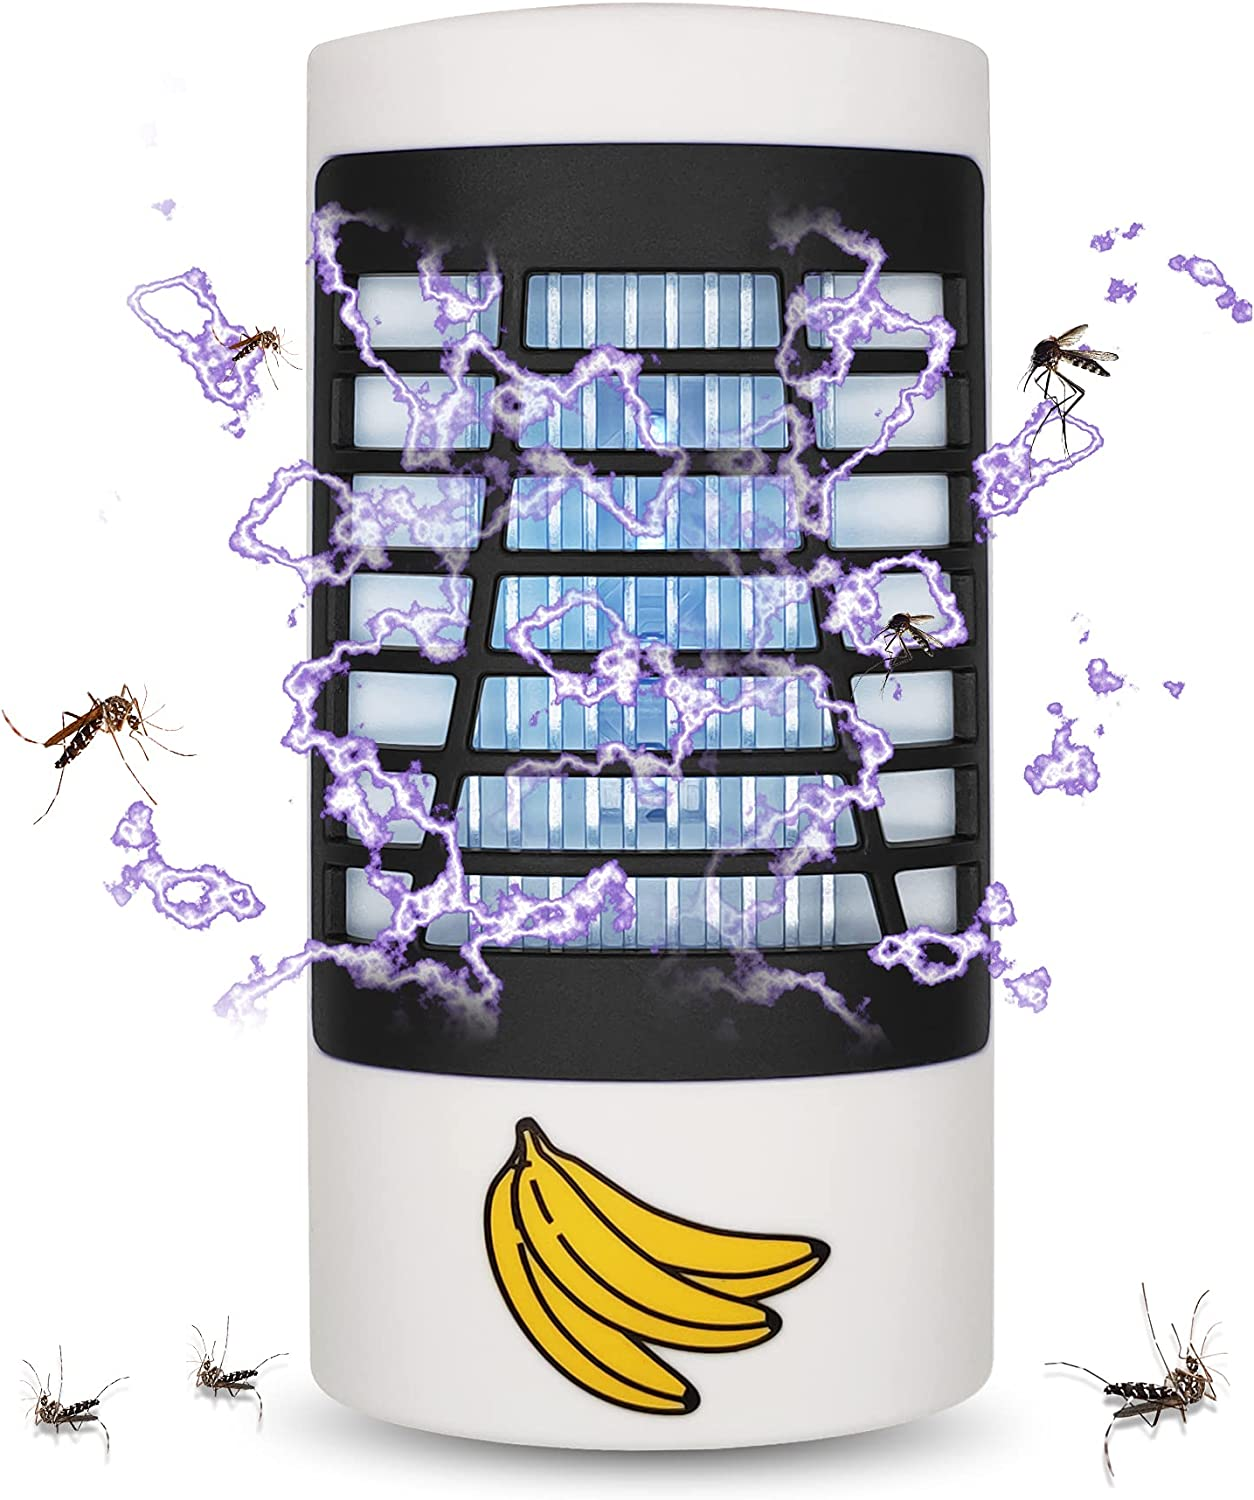 Bug Zapper Indoor, Electronic Fly Zapper Lamp for Home, Eliminates Gnats Fruit Flies Flying Pests - Non-Toxic - Silent - Effective Operation UV Insect Killer (Black)